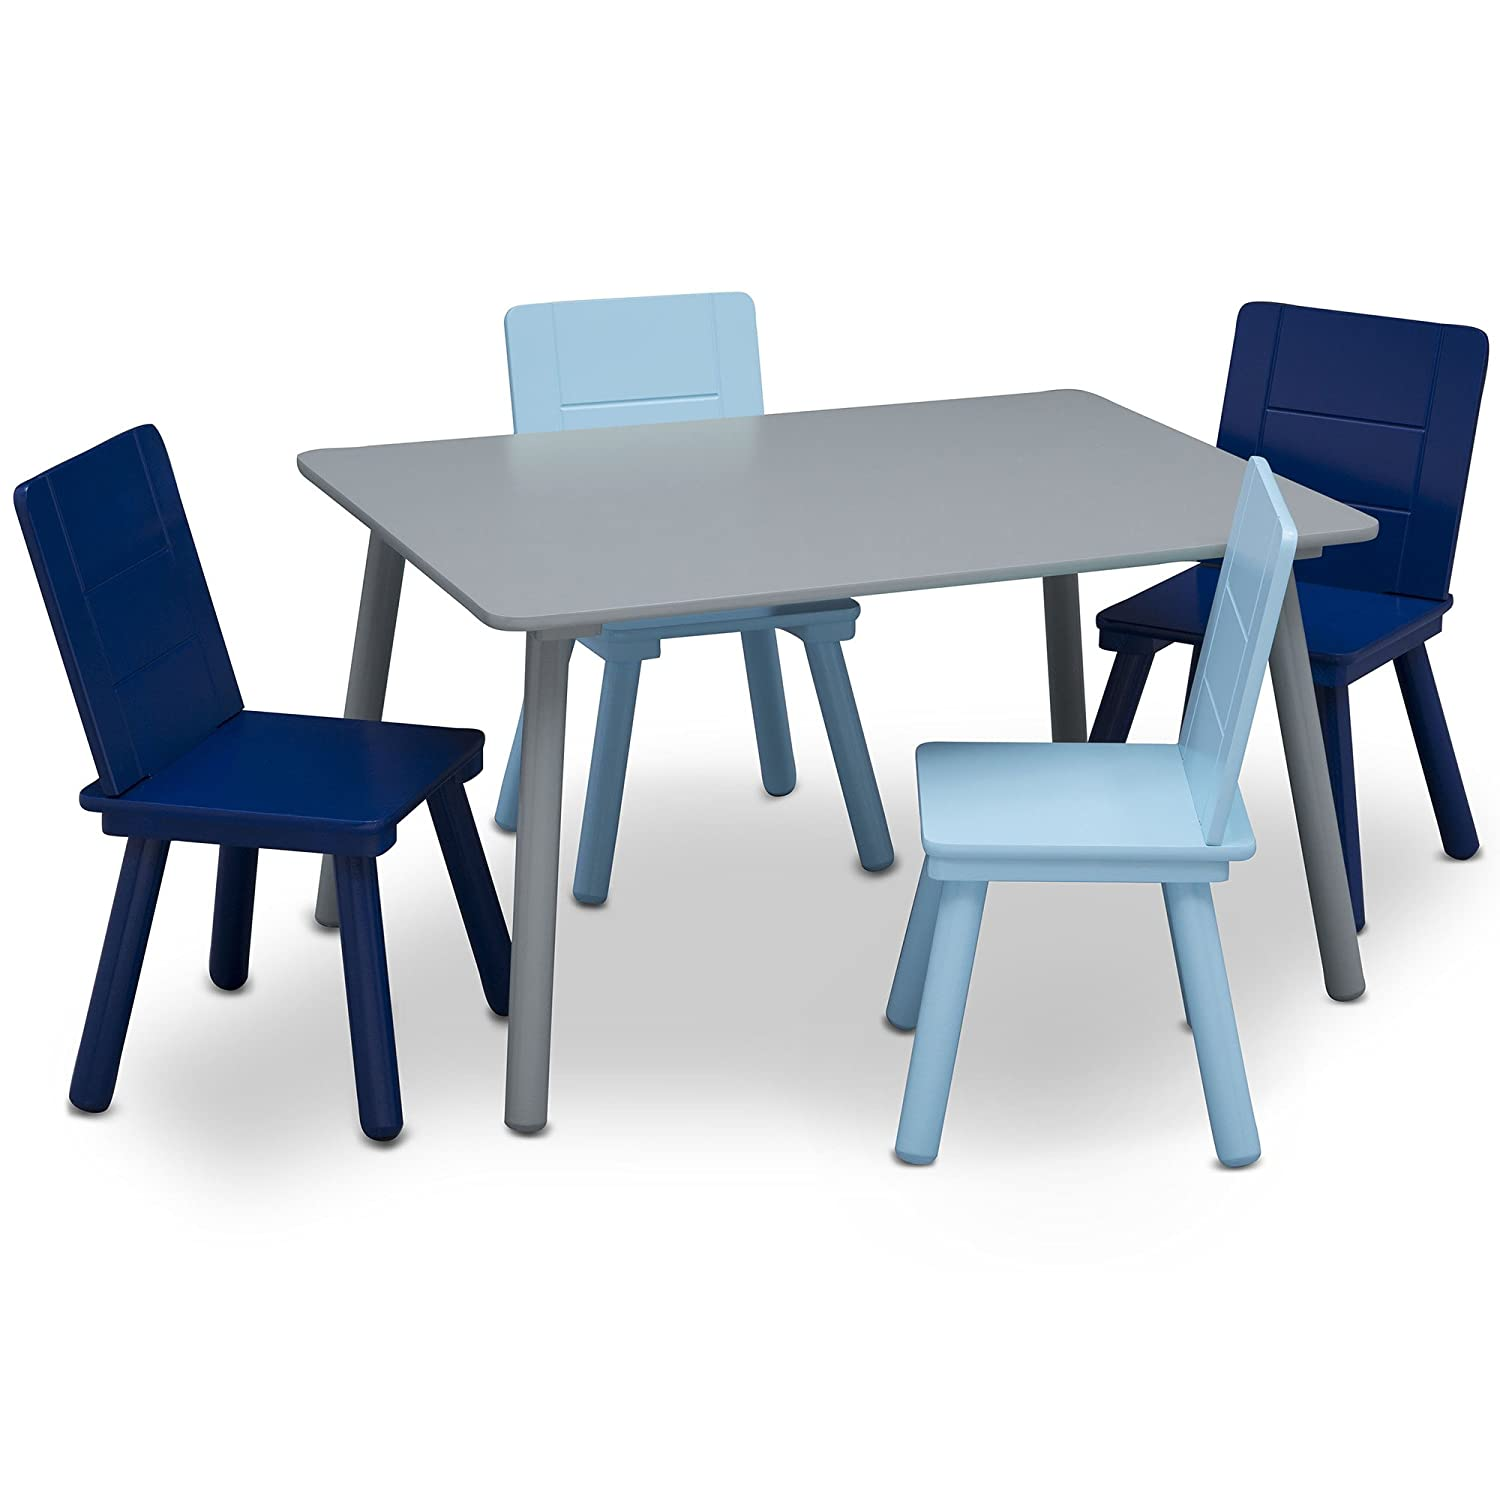 Delta Children Kids Table and Chair Set (4 Chairs Included) Delta Enterprise Corp - PLA TT87452GN-1189